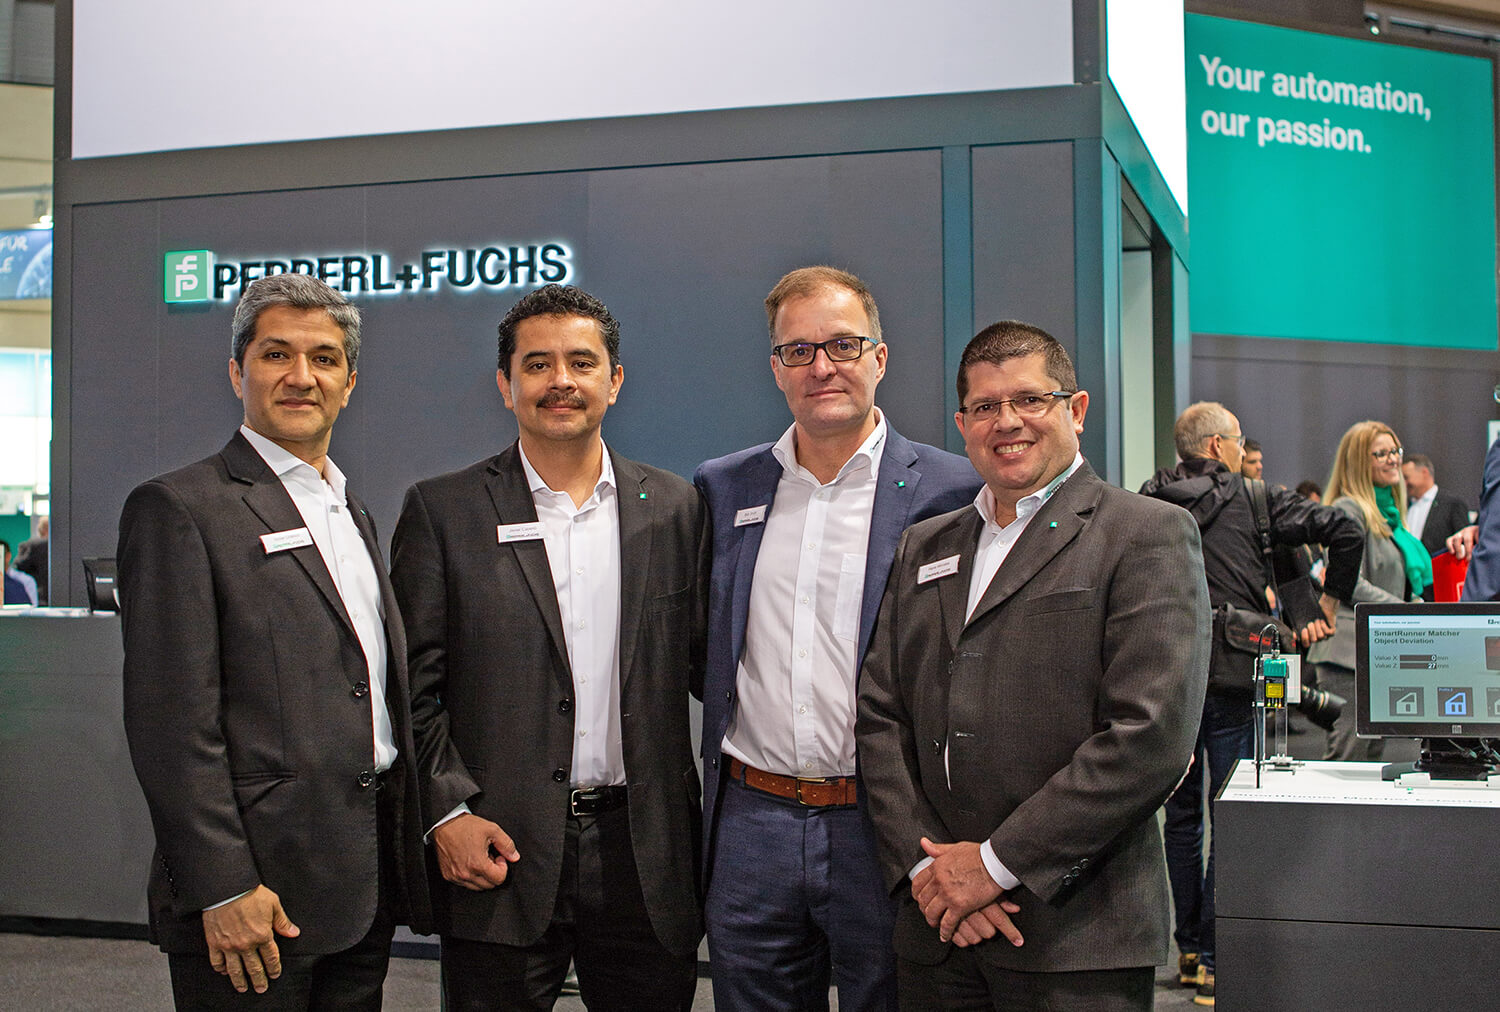 Pepperl+Fuchs North America staff at Hannover Messe 2018: